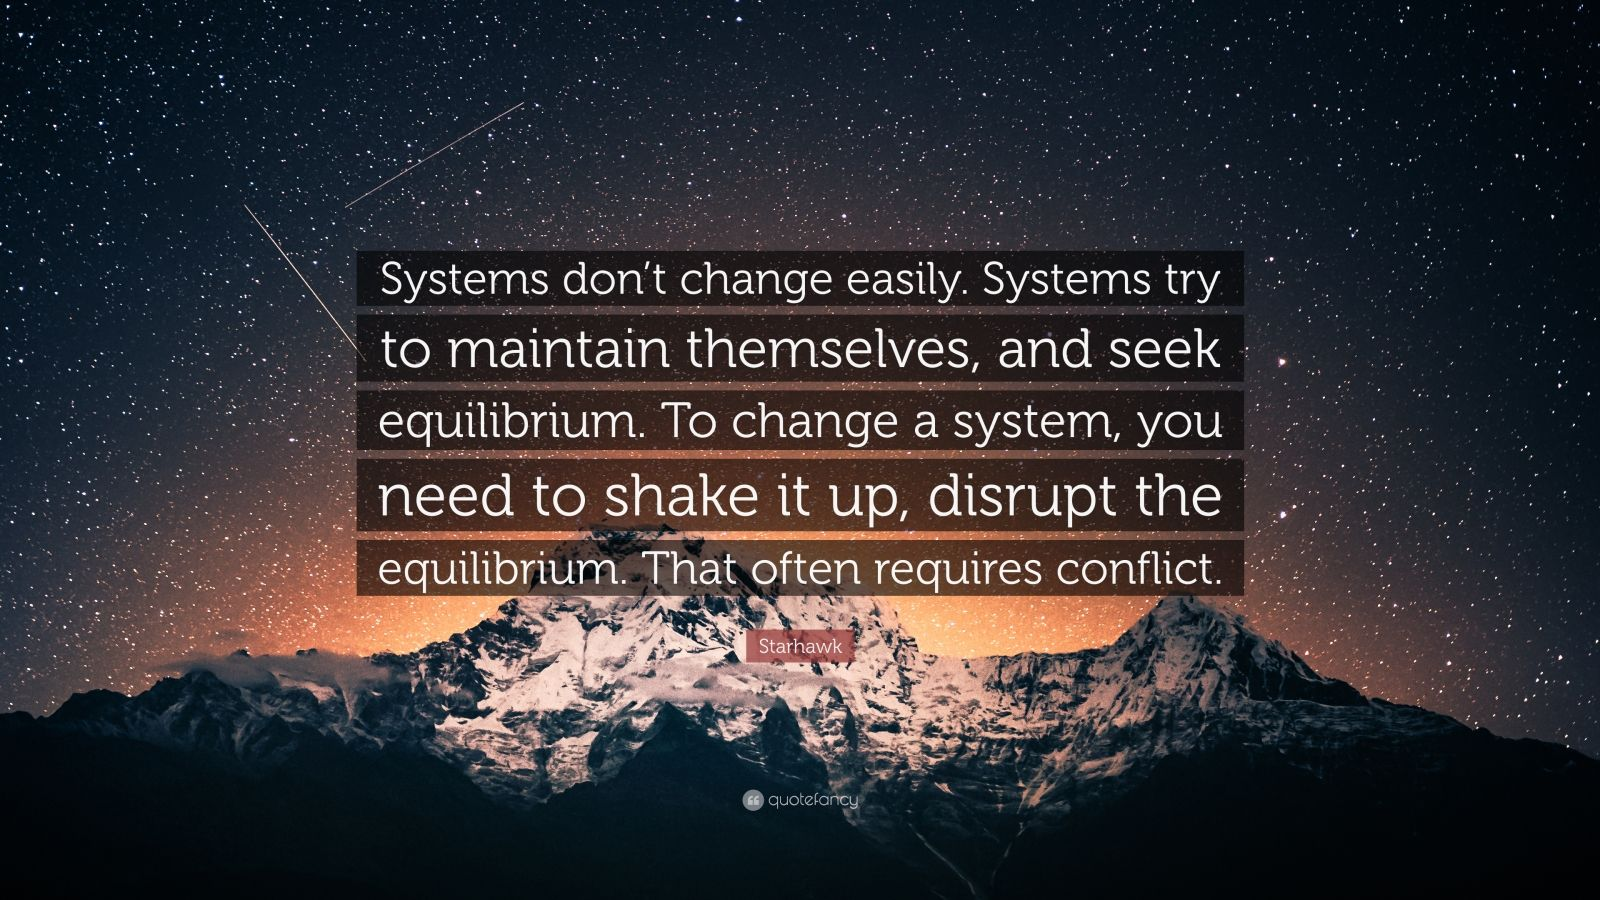 """Starhawk Quote: """"Systems don't change easily. Systems try to maintain themselves, and seek equilibrium. To change a system, you need to shake it up, disrupt the equilibrium. That often requires conflict."""""""